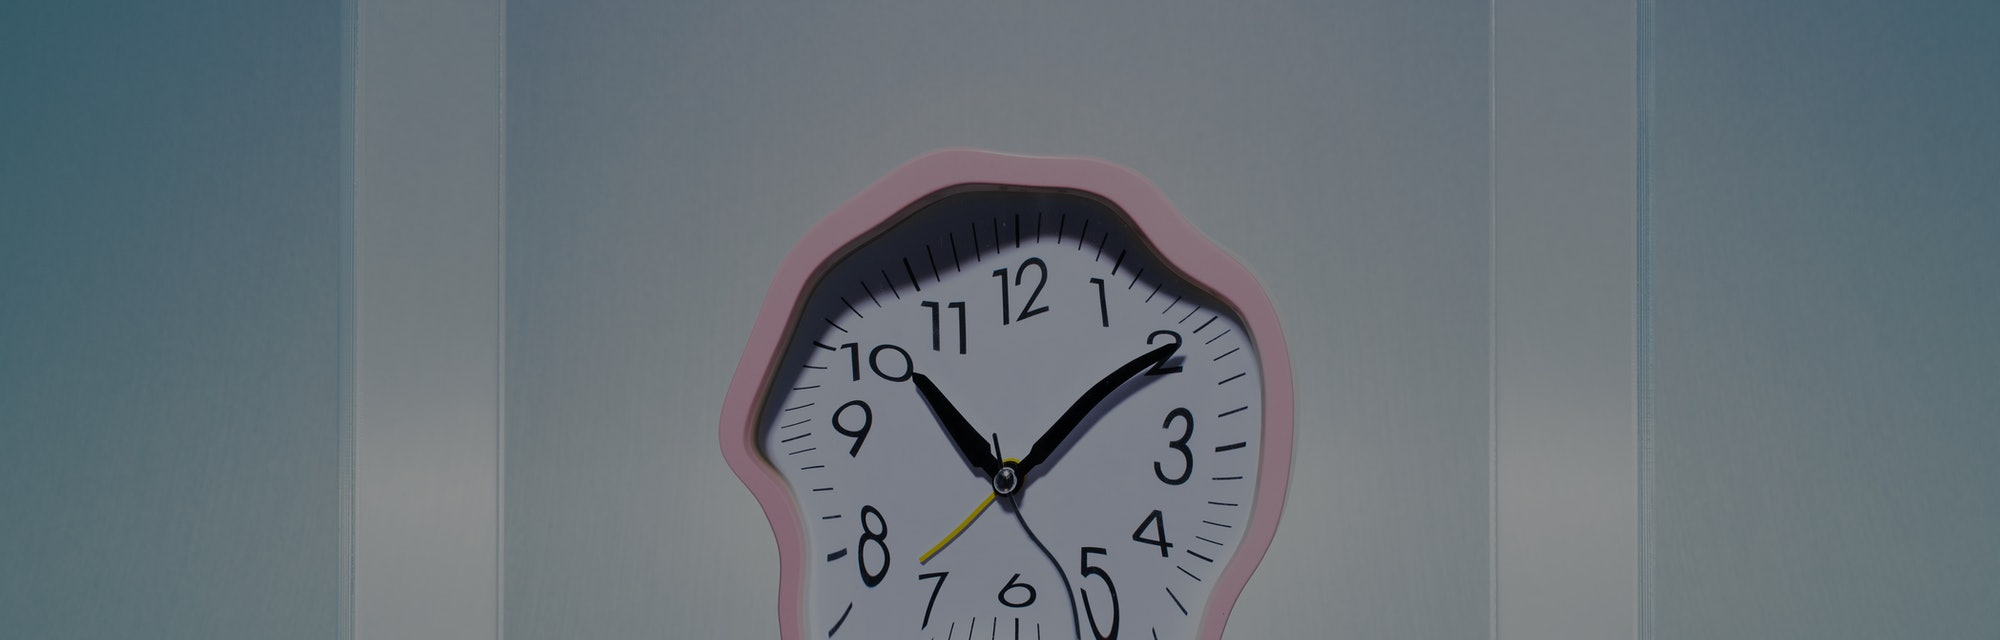 Melting pink analog clock in mid air inside of clear lucite cube